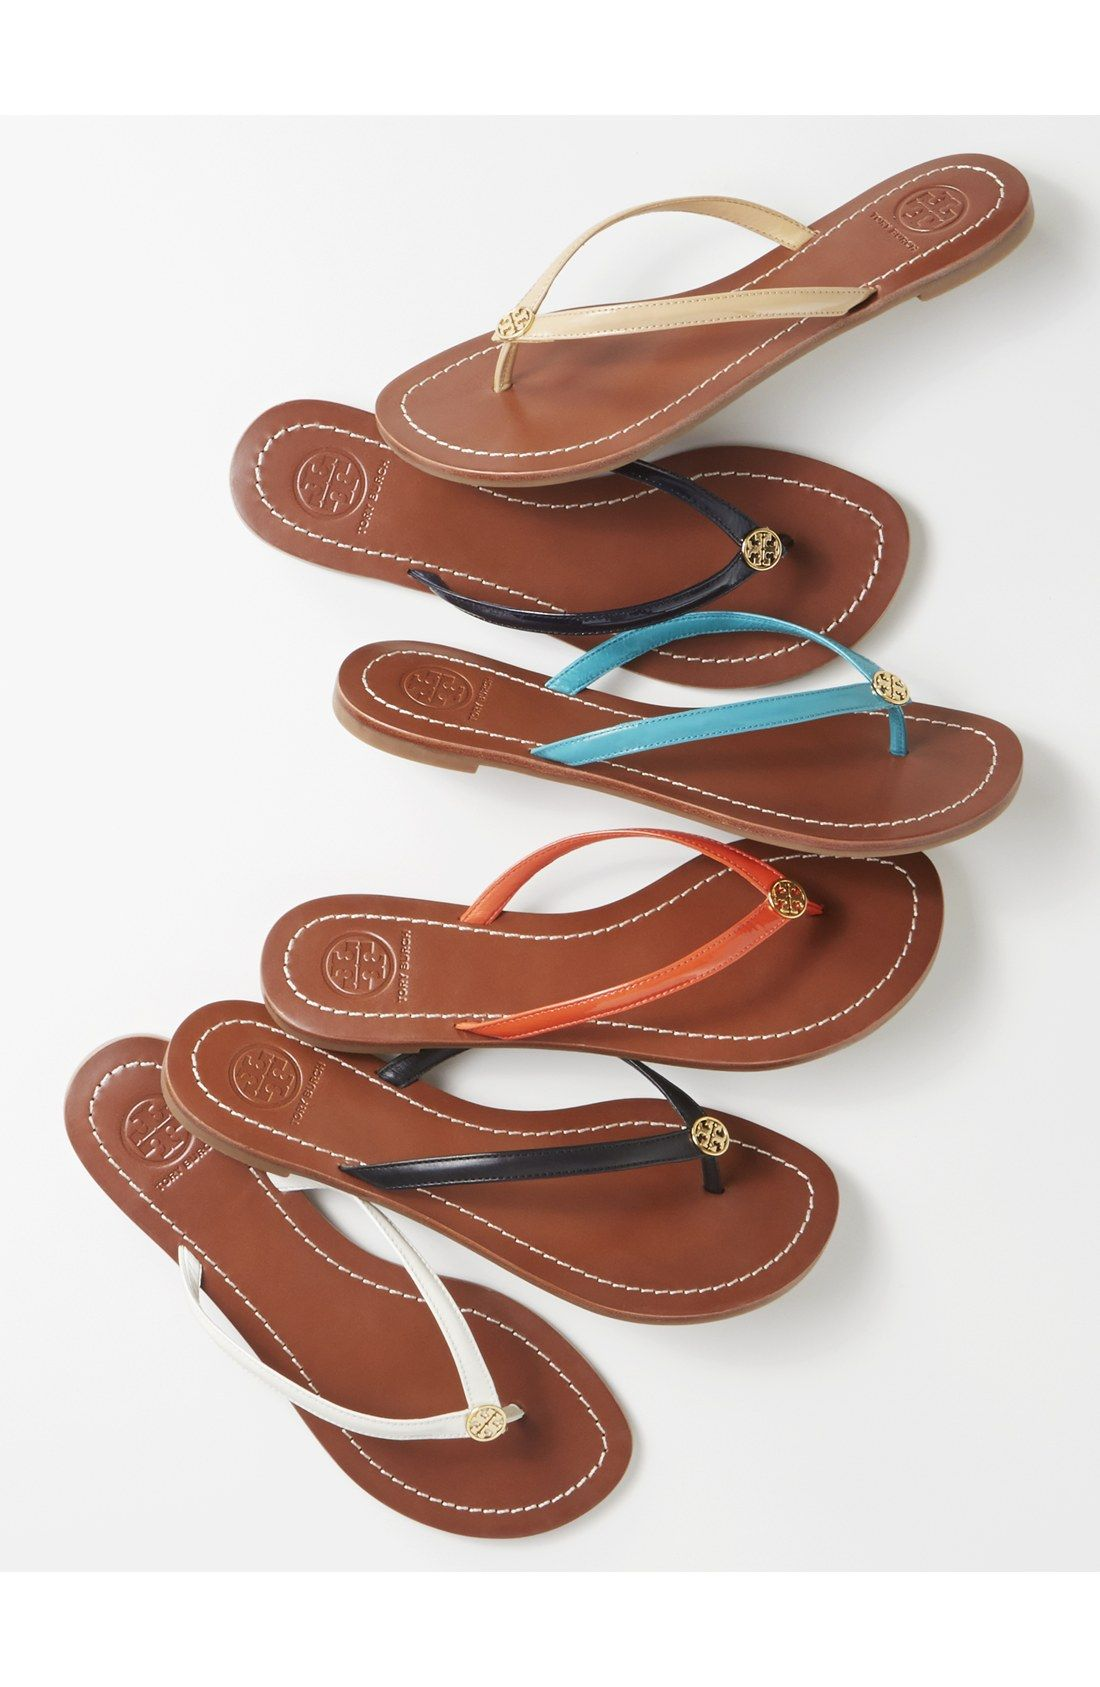 6d9db97d047 http   www.newtrendclothing.com category tory-burch